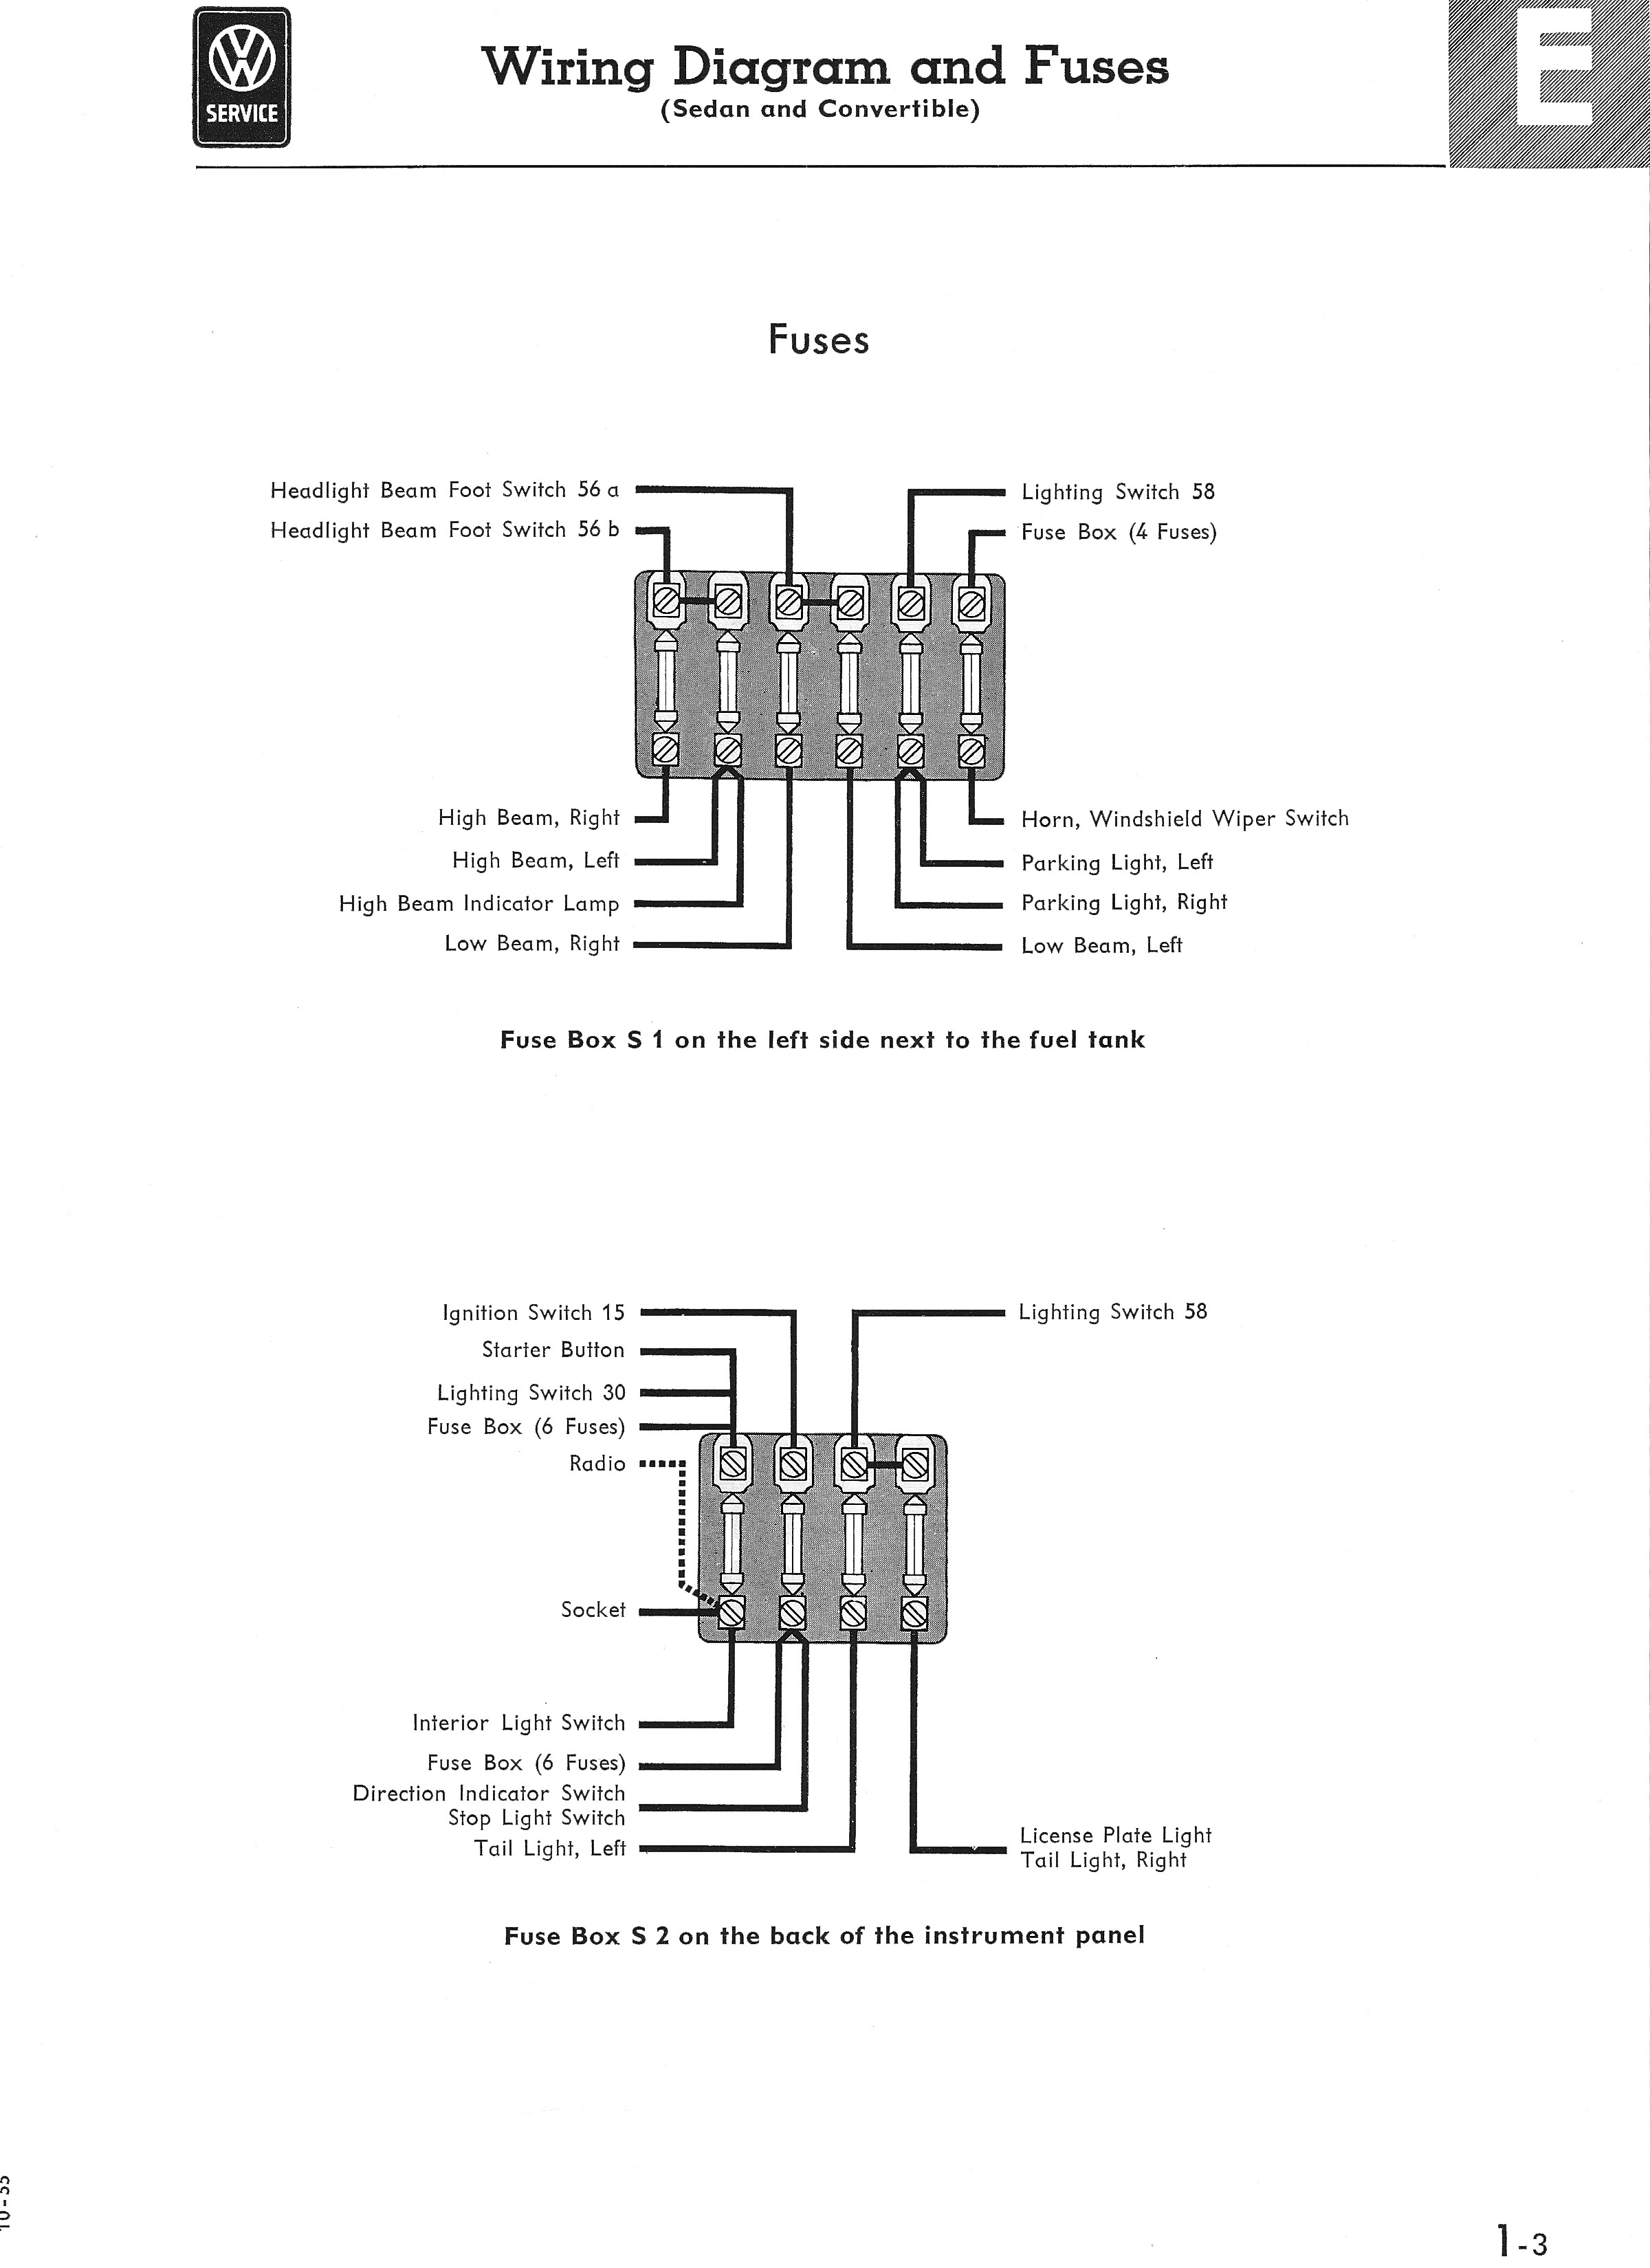 Thesamba Com Type 1 Wiring Diagrams 2006 Sierra Wiring Diagram Fuse Panel  Diagram For Wiring